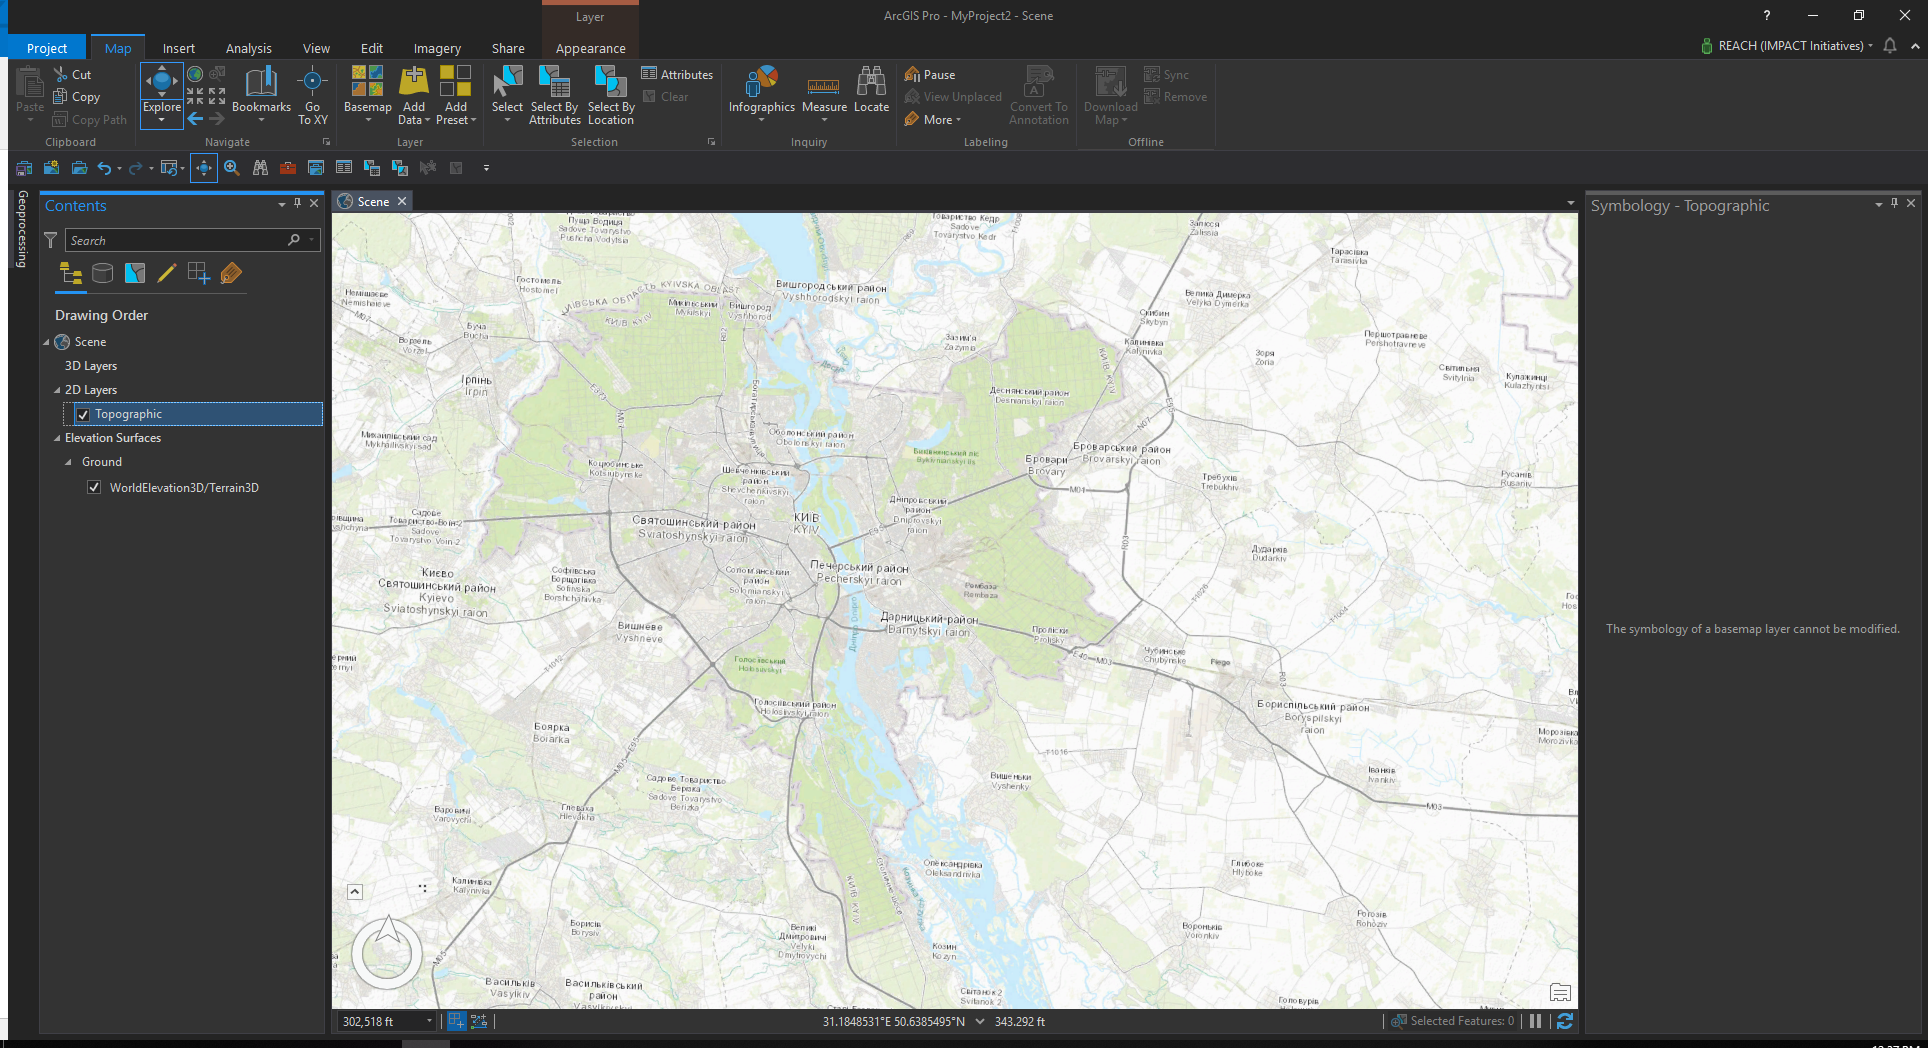 First impressions from migrating to ArcGIS Pro